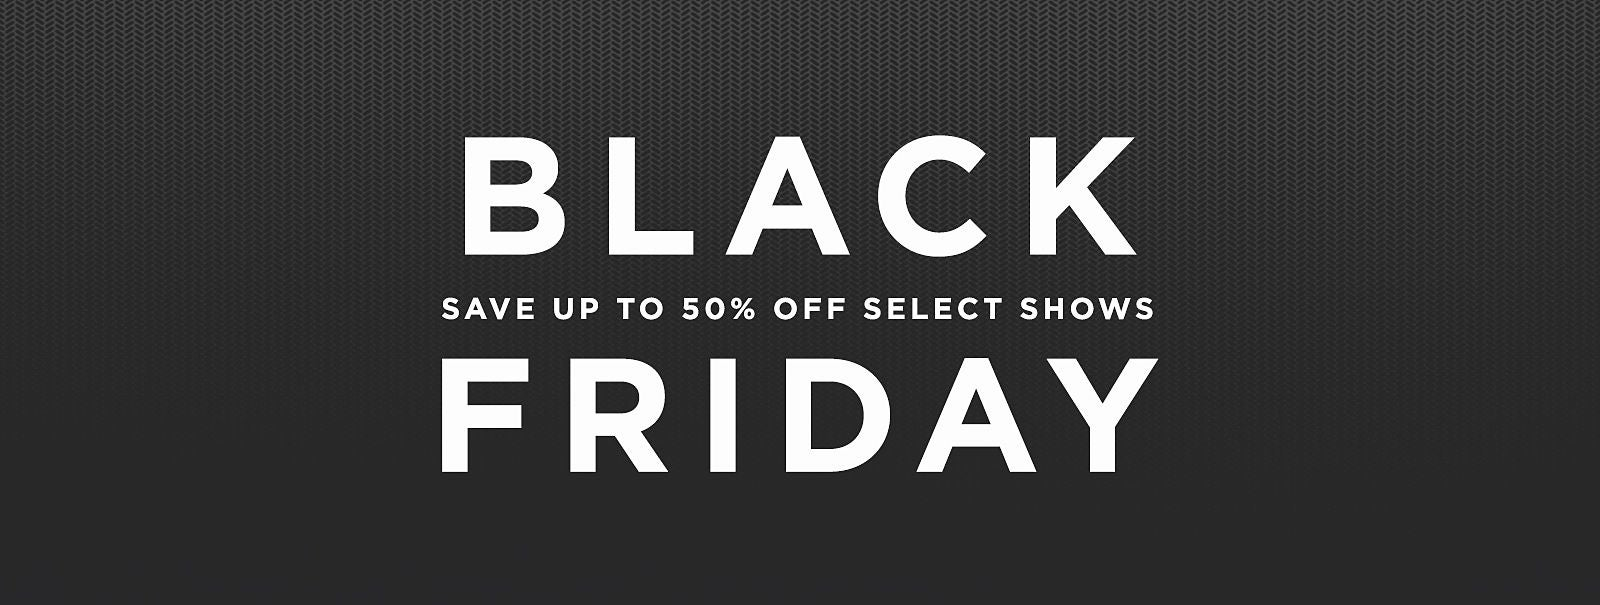 More Info - Black Friday Offers